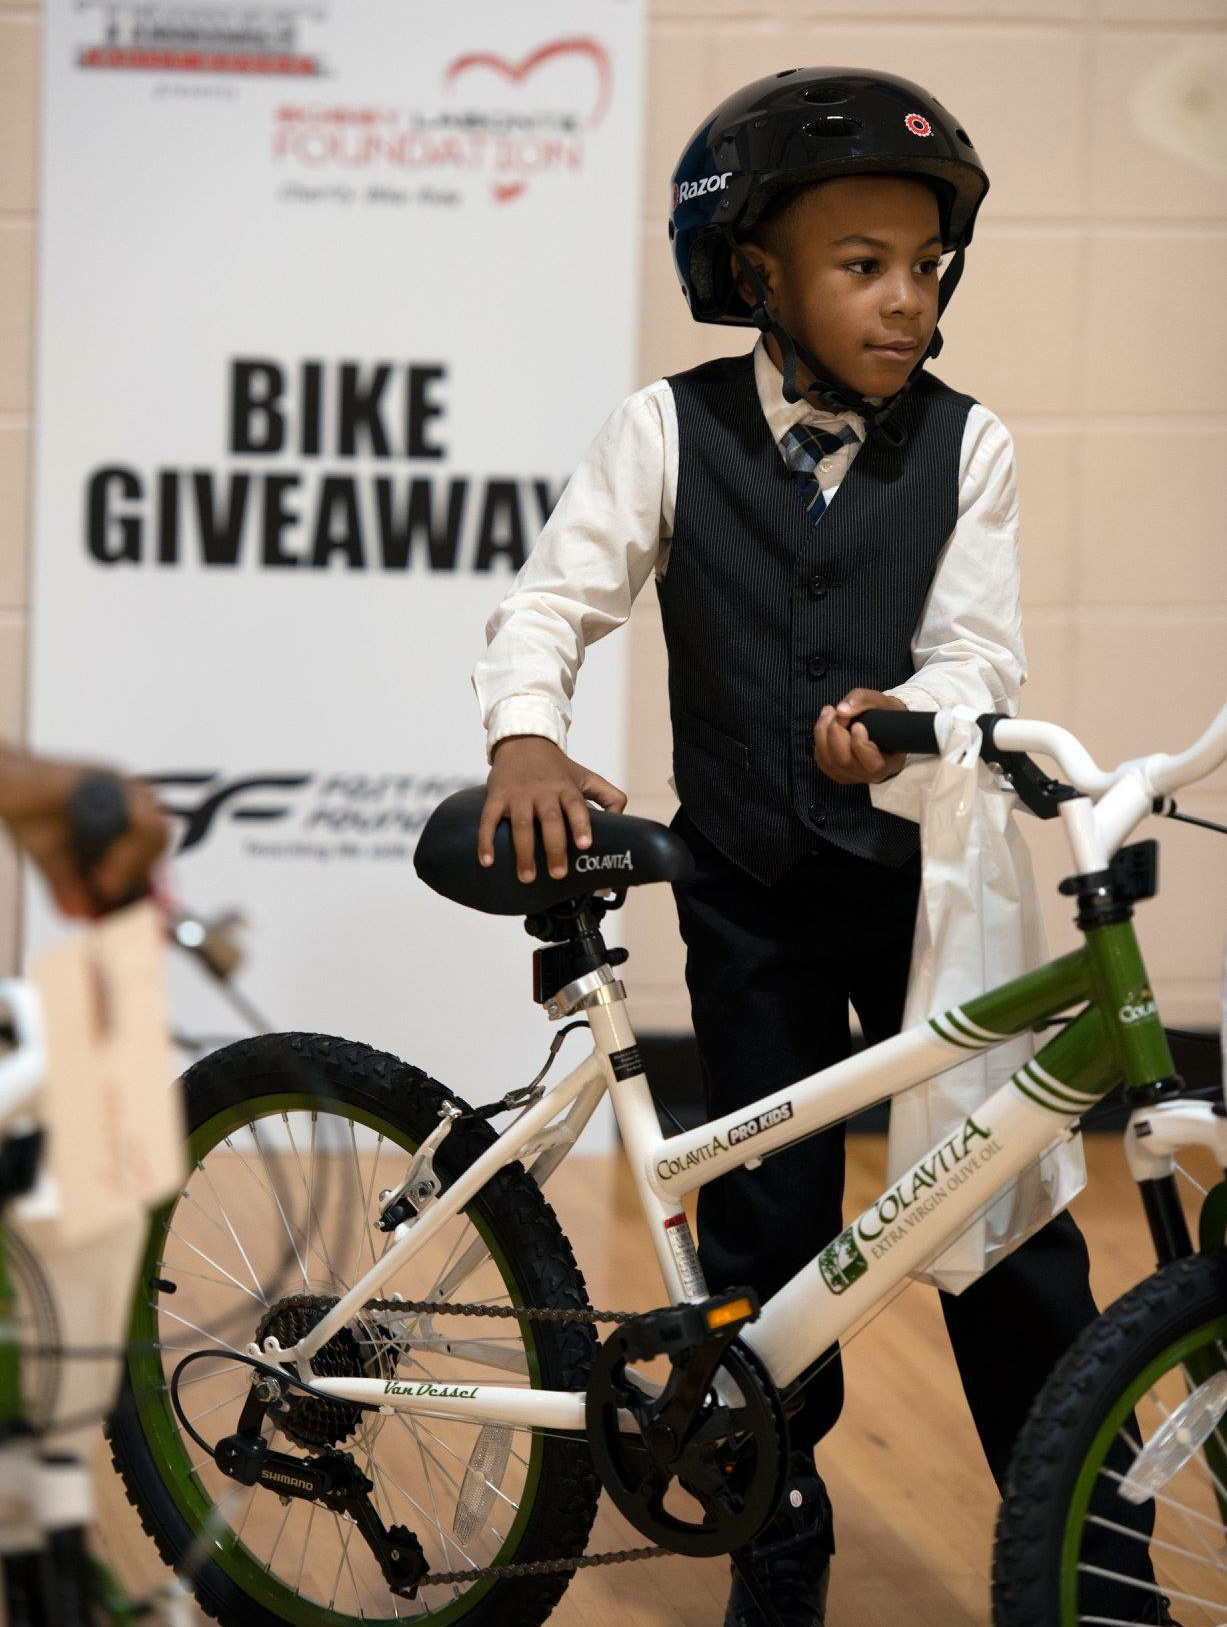 In 2018, Colavita supported the Bobby Labonte Foundation in order to surprise more than 80 children in need with a new bike and helmet. photo credit: colavita